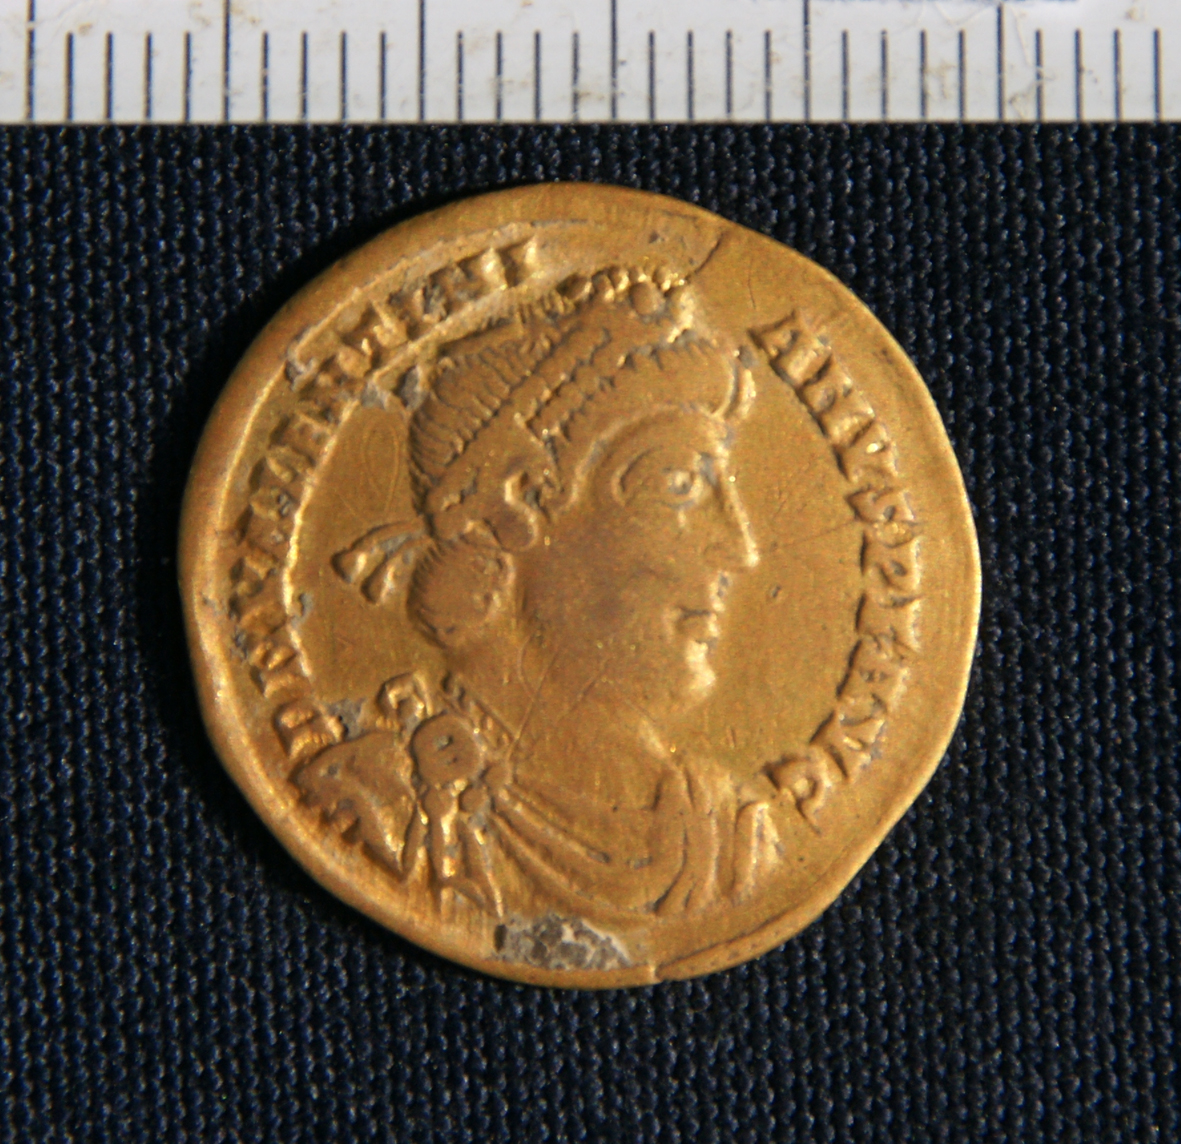 Solidus of Emperor Valentinian which formed part of the hoard found in Deir el Bakhit, Egypt (front side). Photo: DAI Cairo.